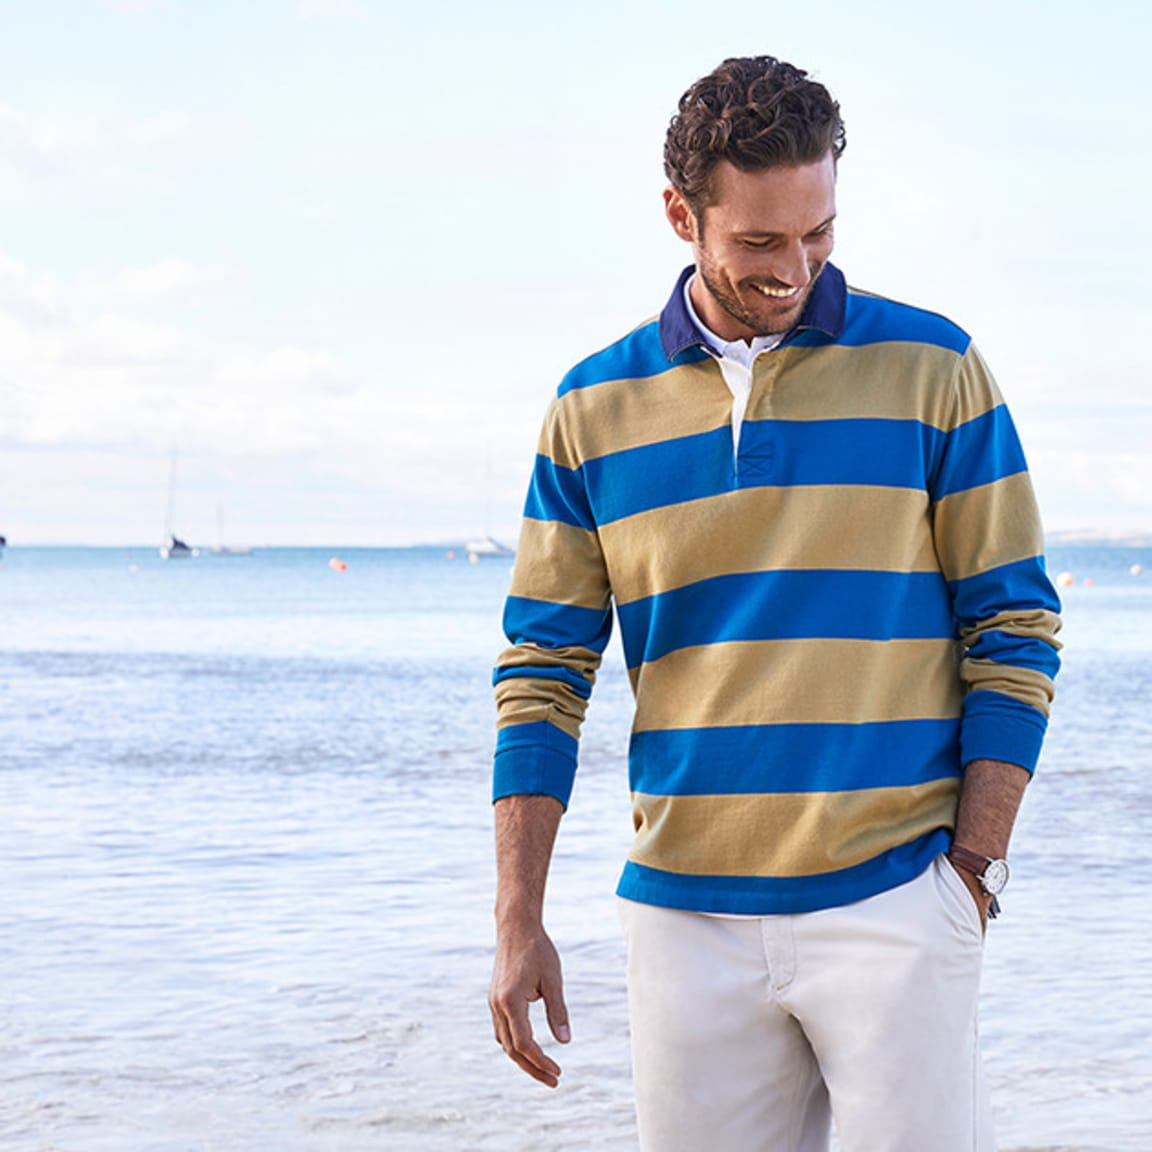 GAZMAN: Up to 40% off selected styles